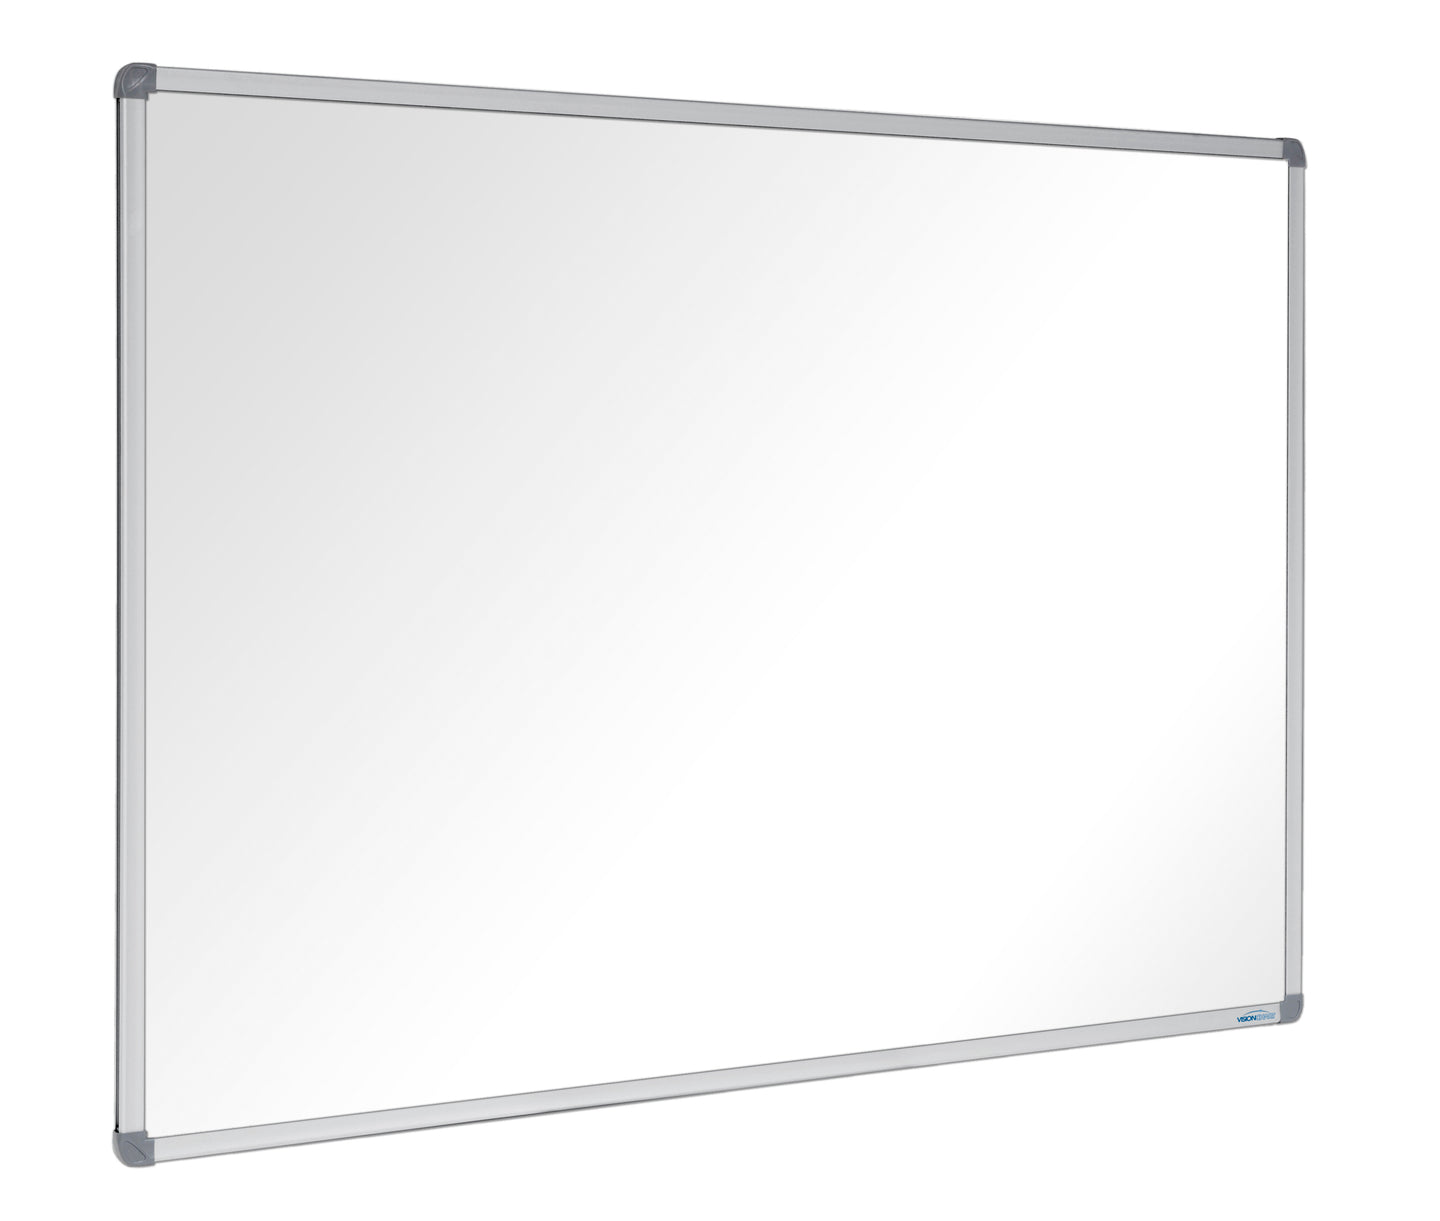 PORCELAIN WHITEBOARDS